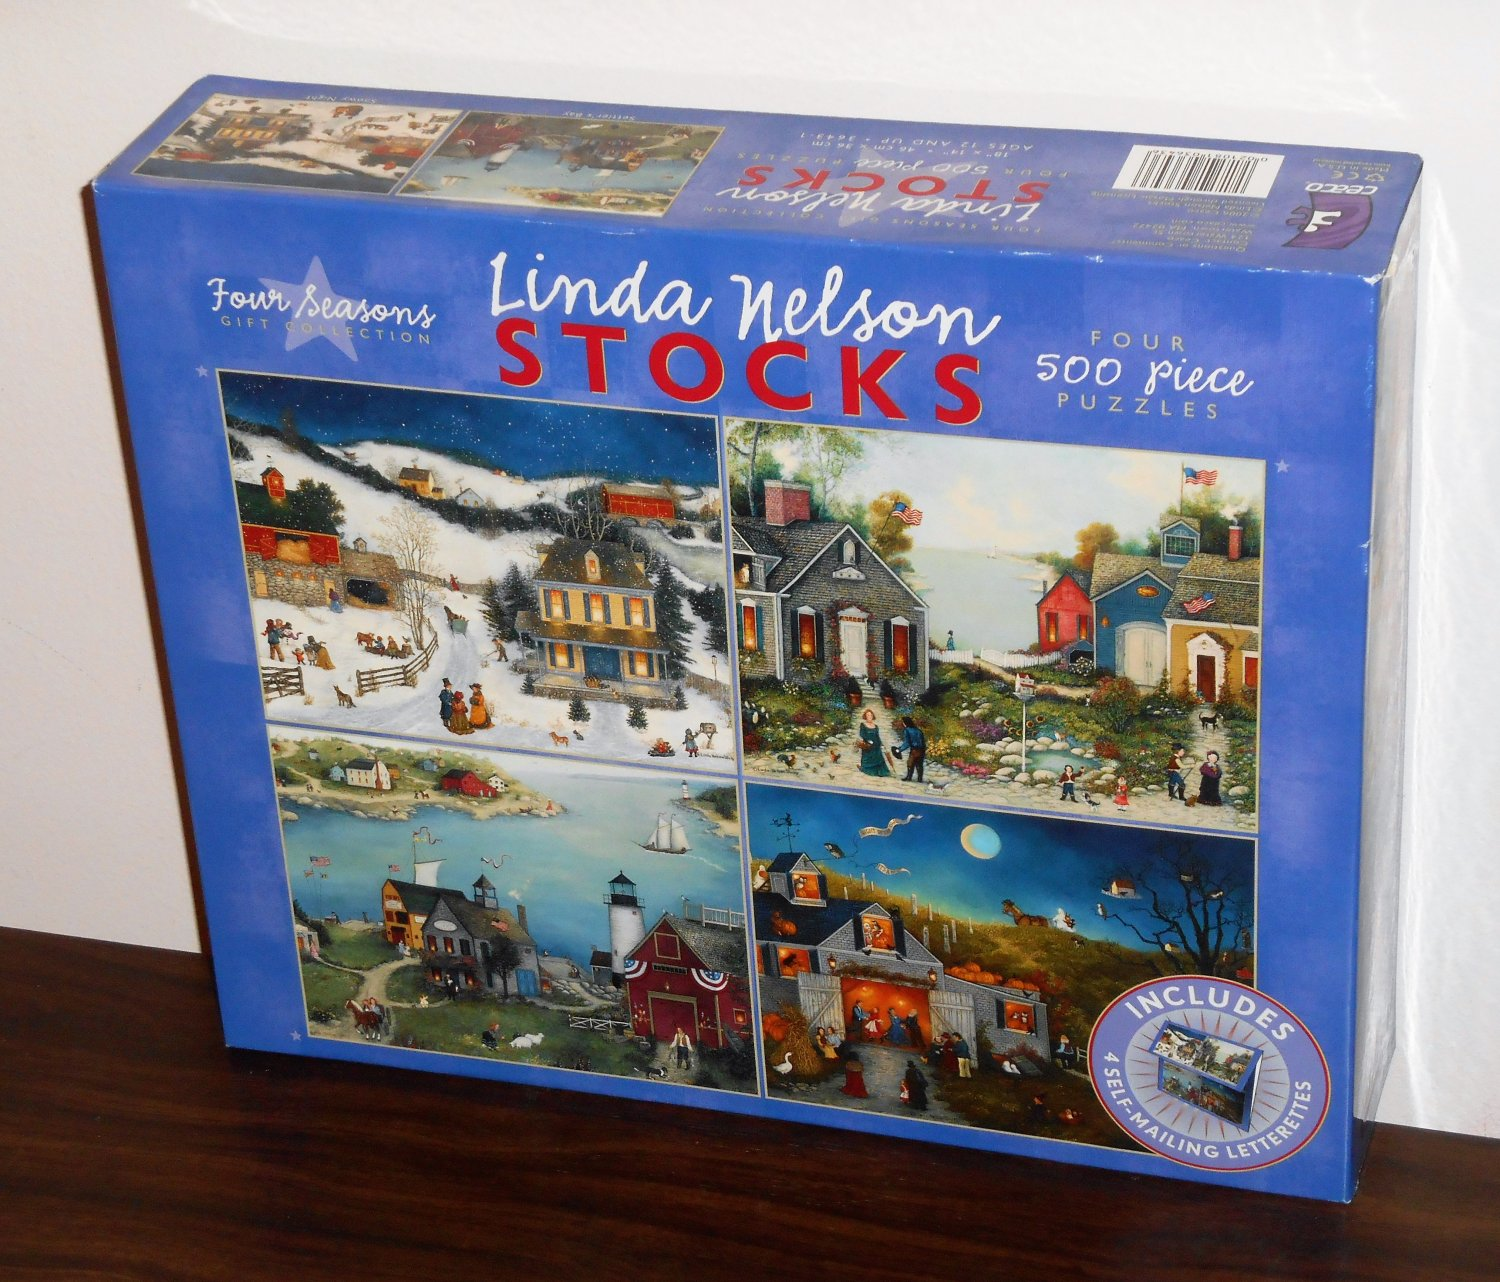 Linda Nelson Stocks 4 500 Piece Jigsaw Puzzle Set 3643-1 Four Seasons Gift Collection NIB